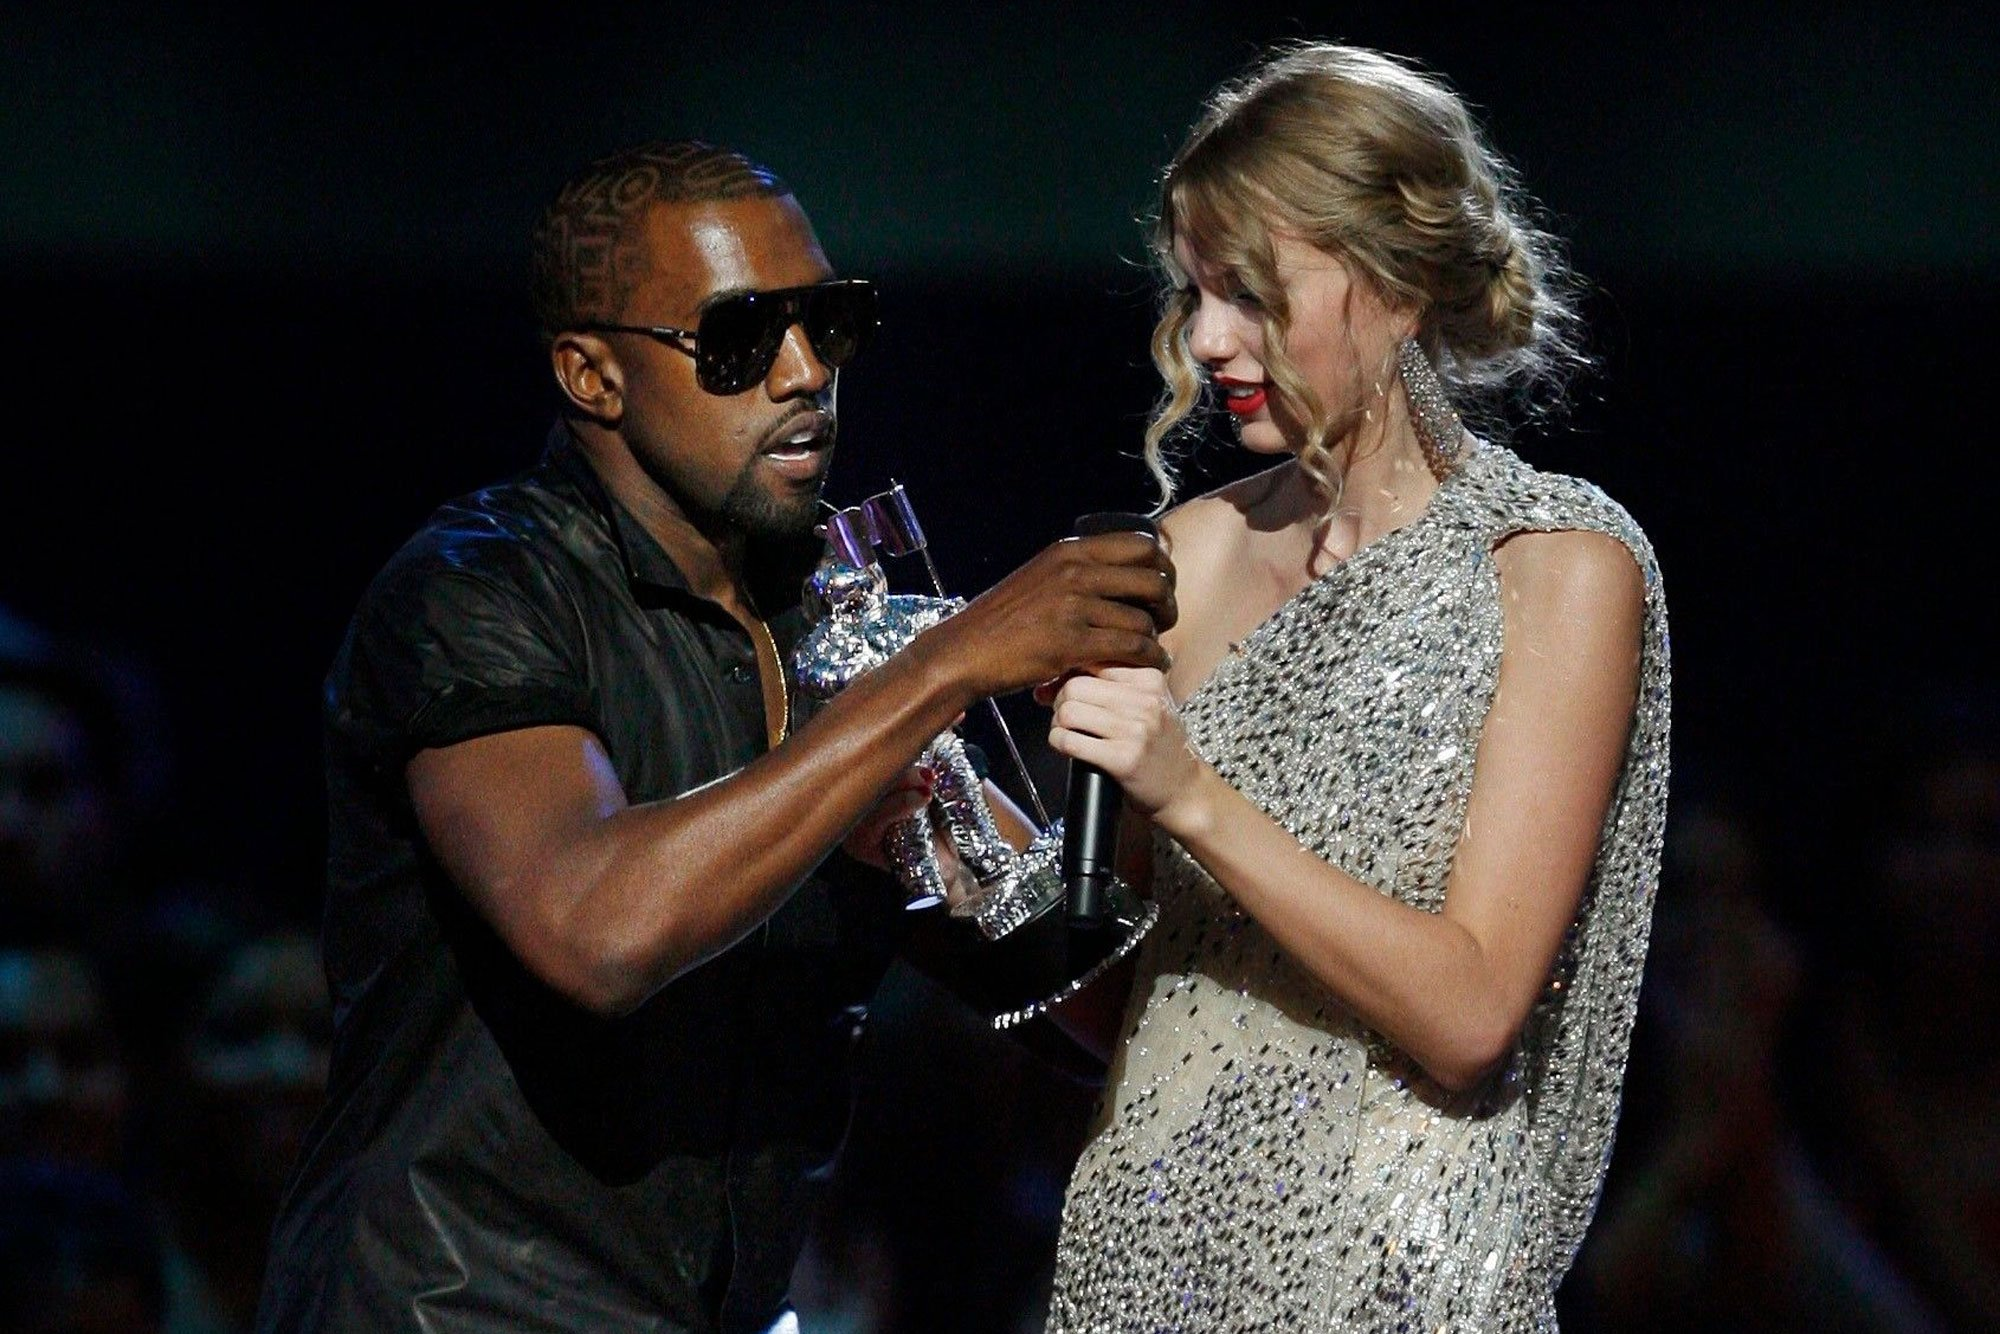 Taylor Swift, Kanye Wests famous phone call leaks: Kim, west slammed